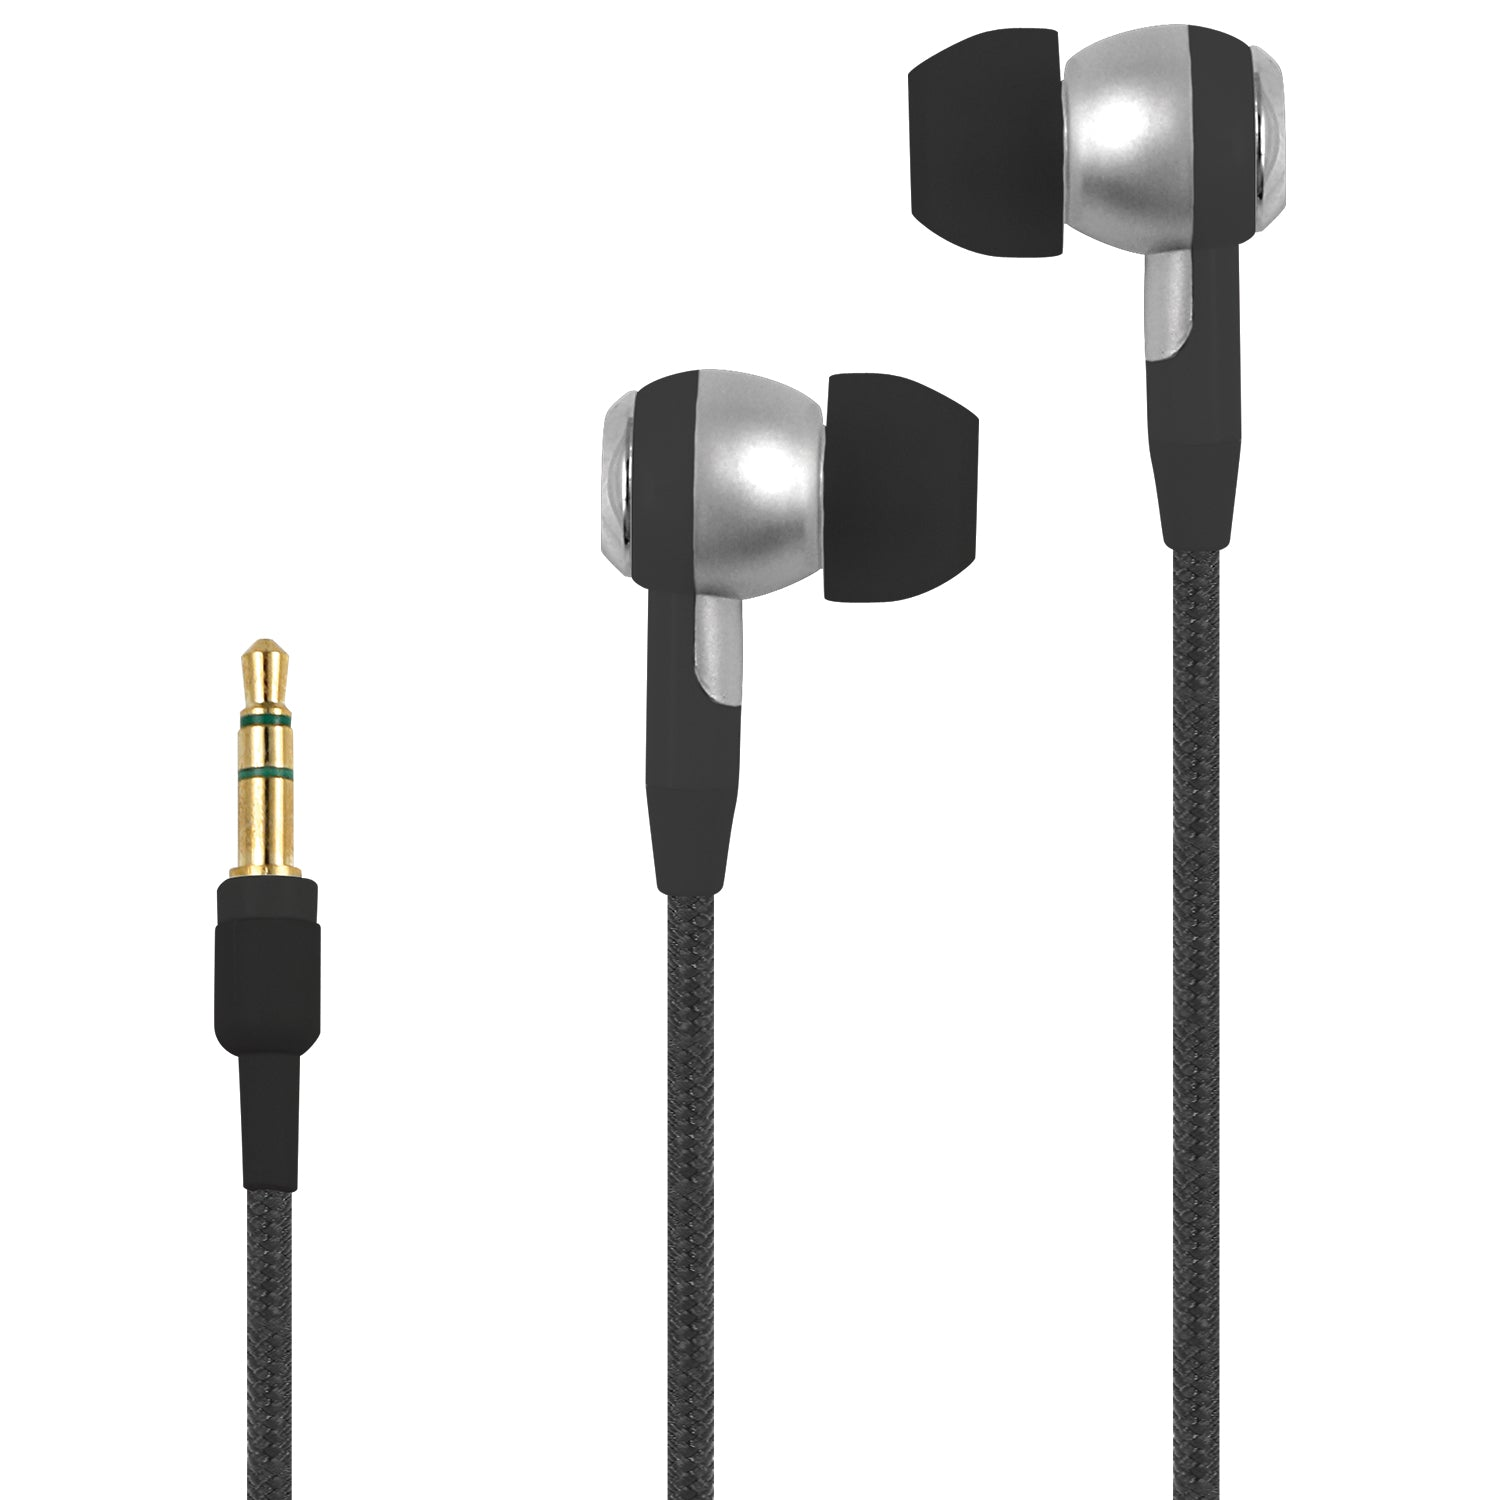 5-pack Stereo Earbuds with Heavy Duty Braided Cables